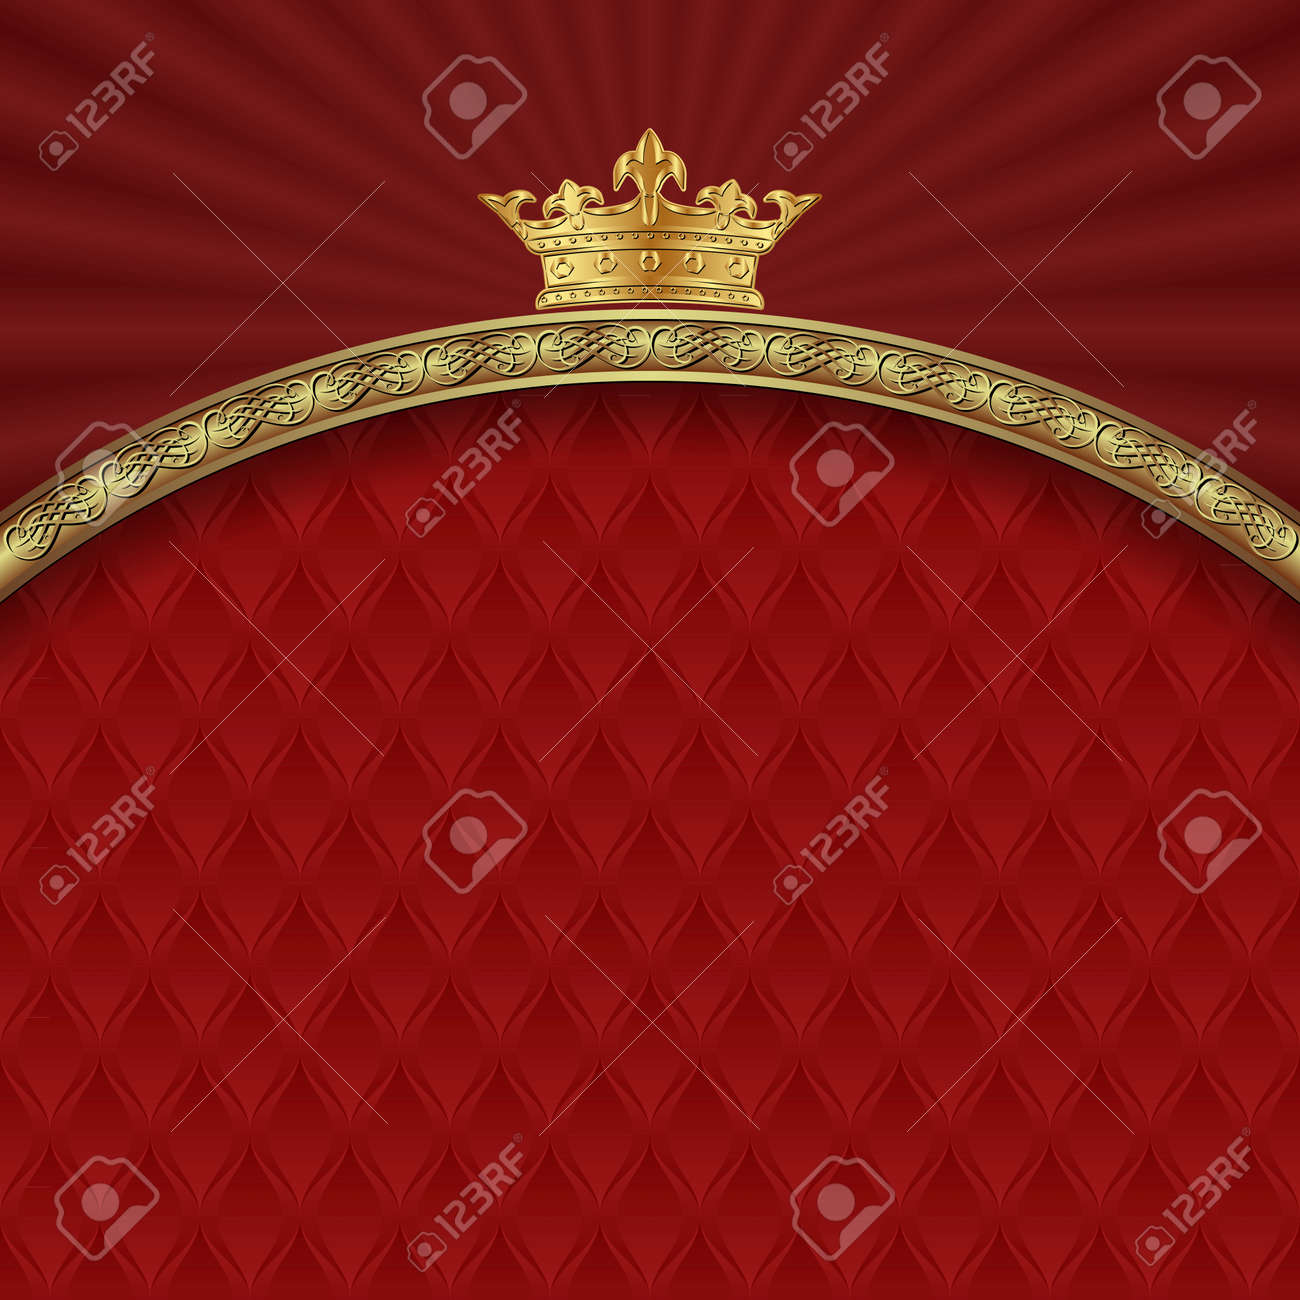 ornate background with golden border and crown - 159170406